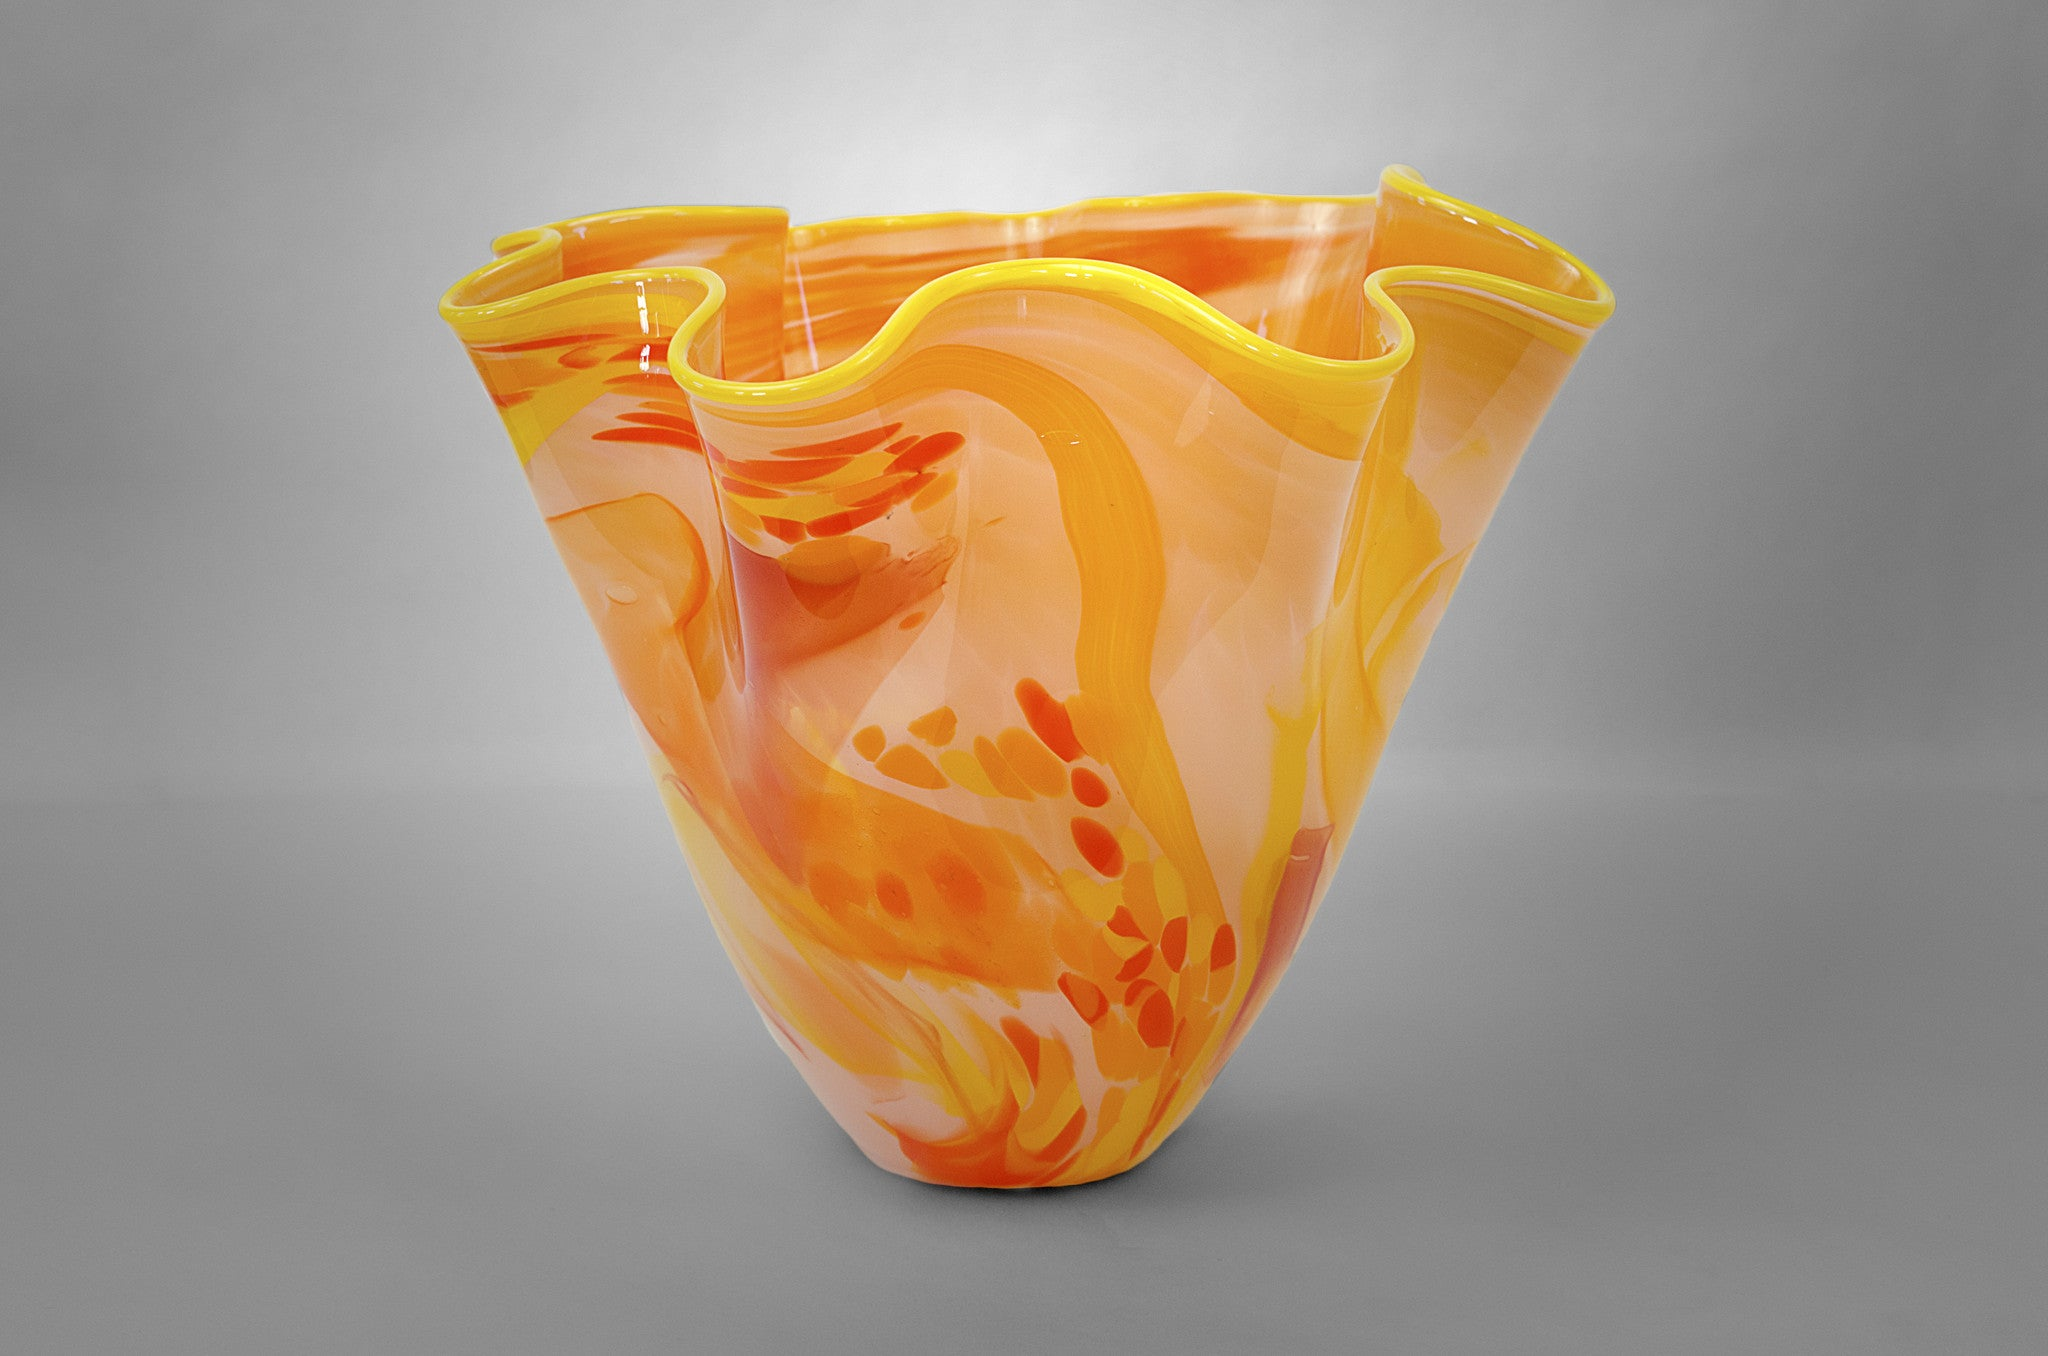 Fluted bowl / vase with broken shards of recycled glass and pink base color and yellow rim